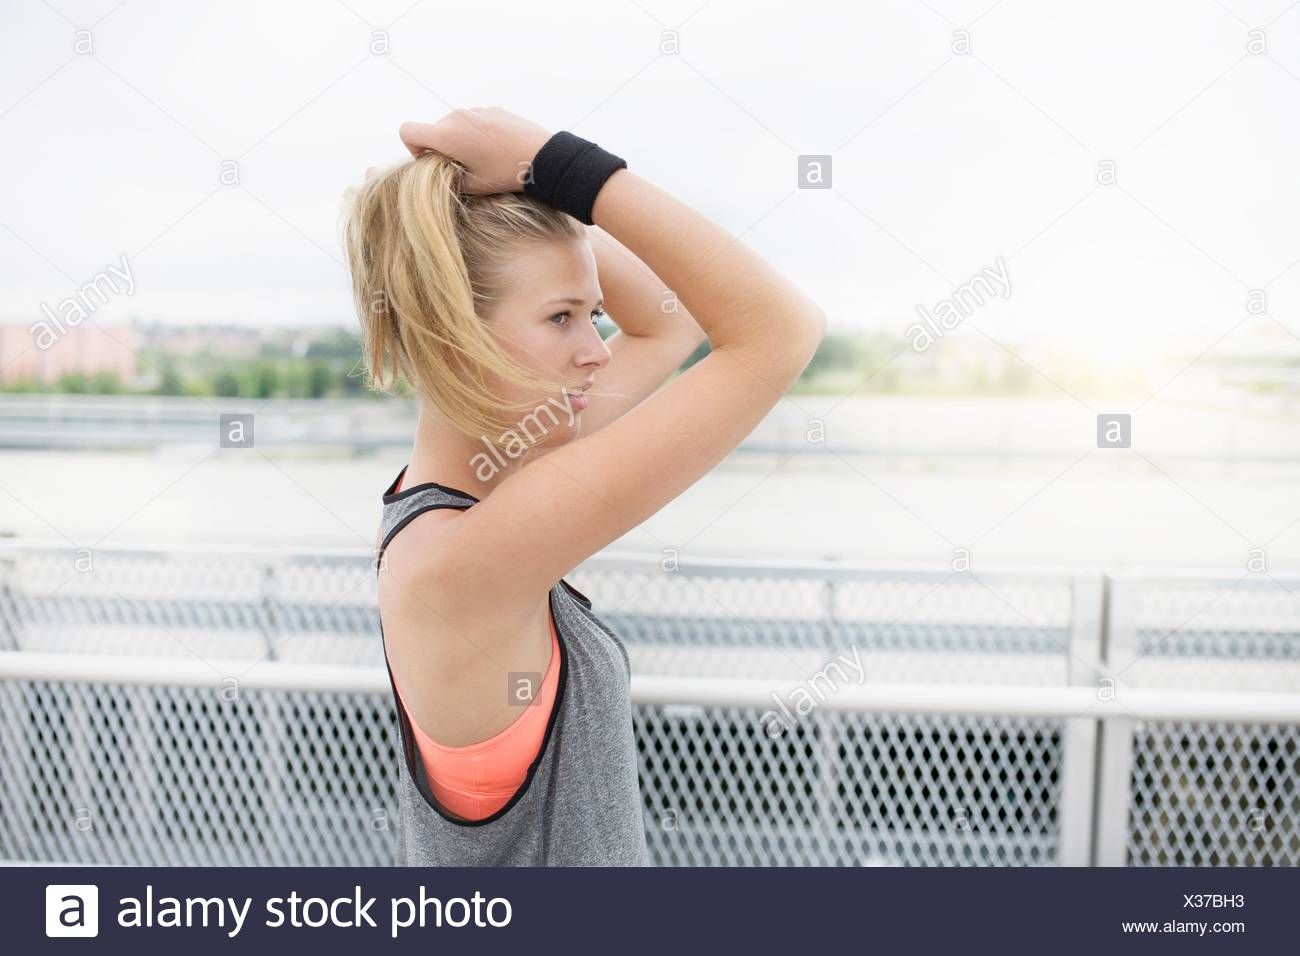 Young woman tying hair, preparing for workout, outdoors - Stock Image